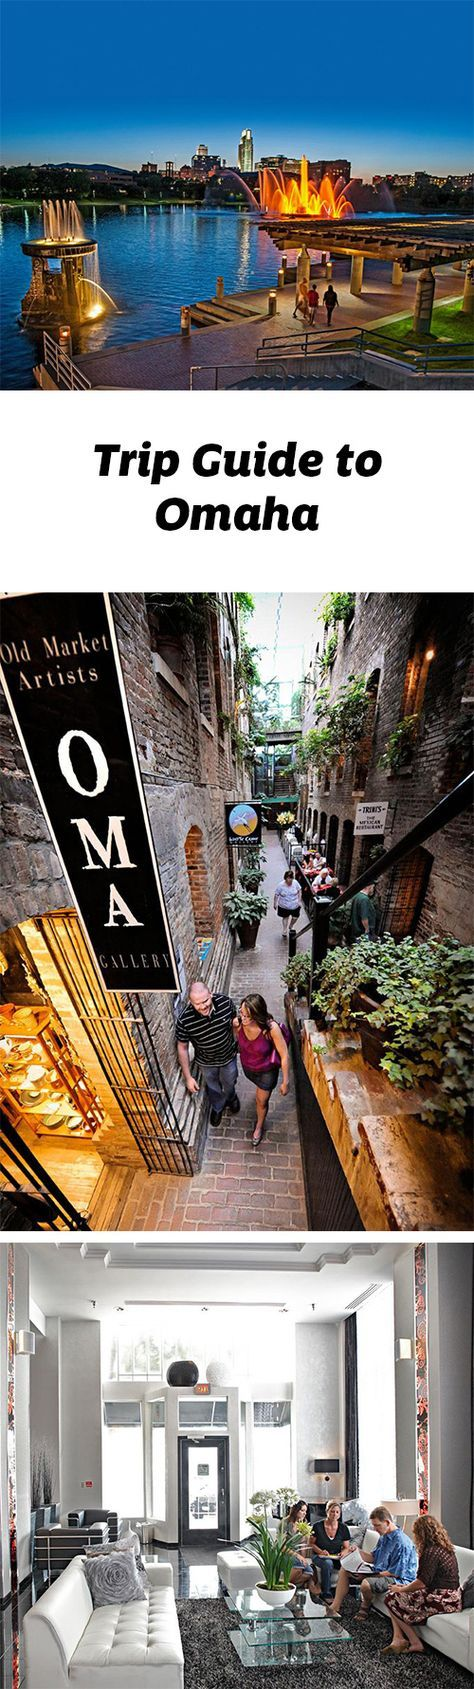 Nebraska's largest city blends a famous zoo, top-notch museums and world-class dining into a lively downtown on the Missouri River. See our recommendations for Omaha attractions, restaurants and hotels. Trip guide: http://www.midwestliving.com/travel/nebraska/omaha/omaha-trip-guide/